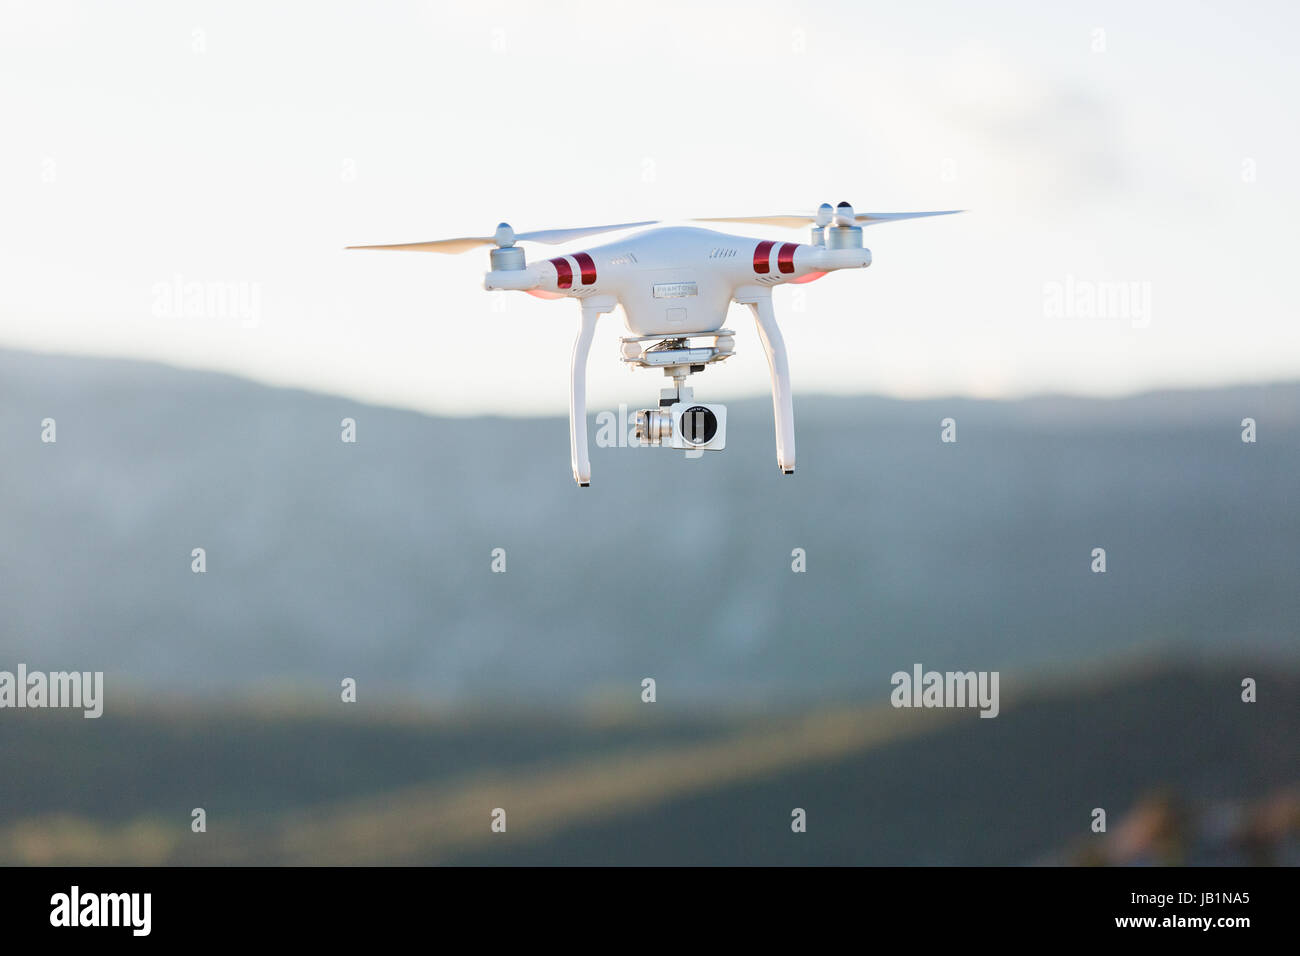 Stock Photo - Phantom Drone with camera attached Stock Photo